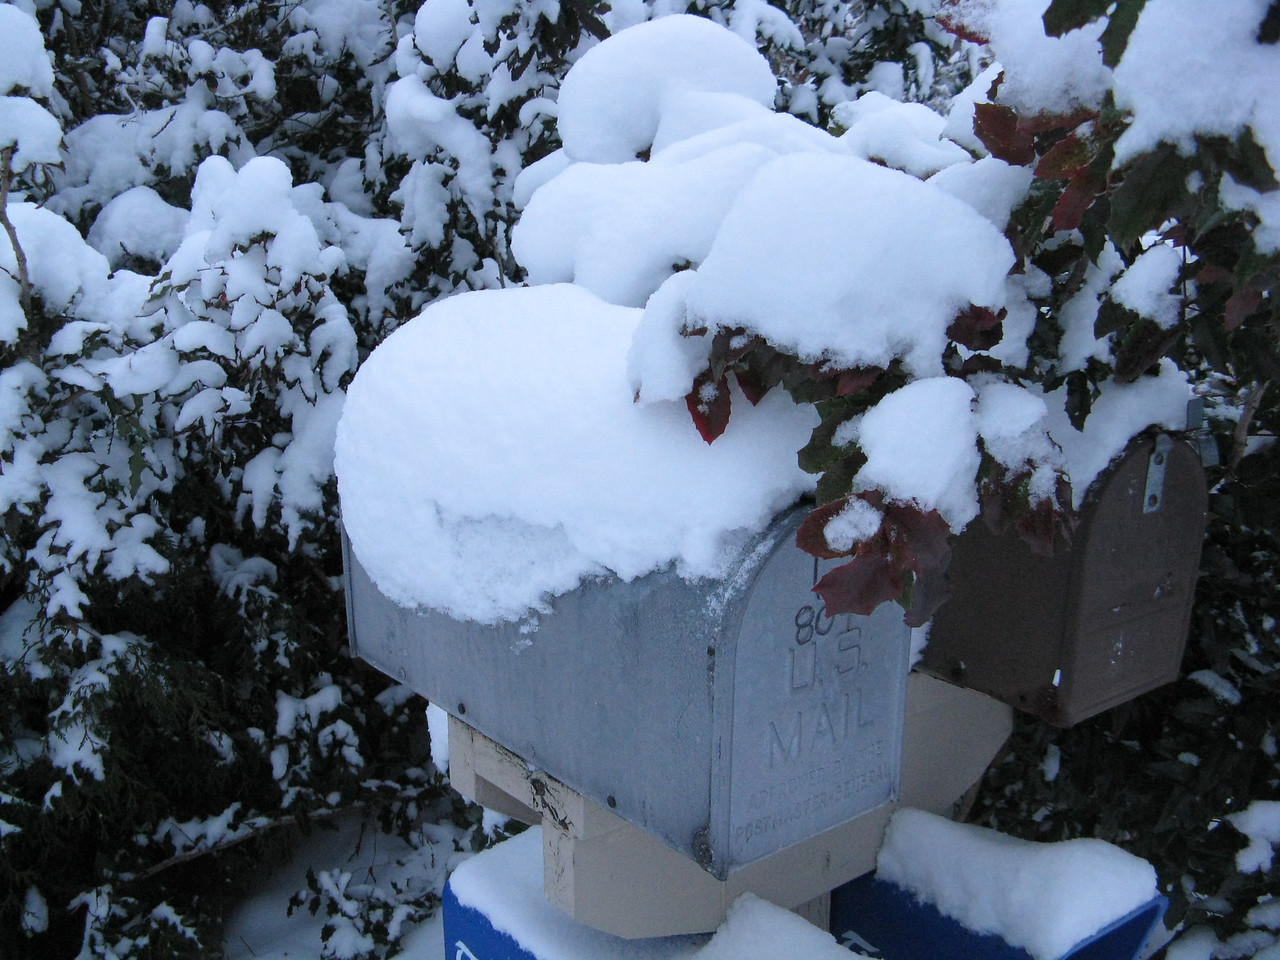 Our mail box covered in snow and branches of a holly bush.